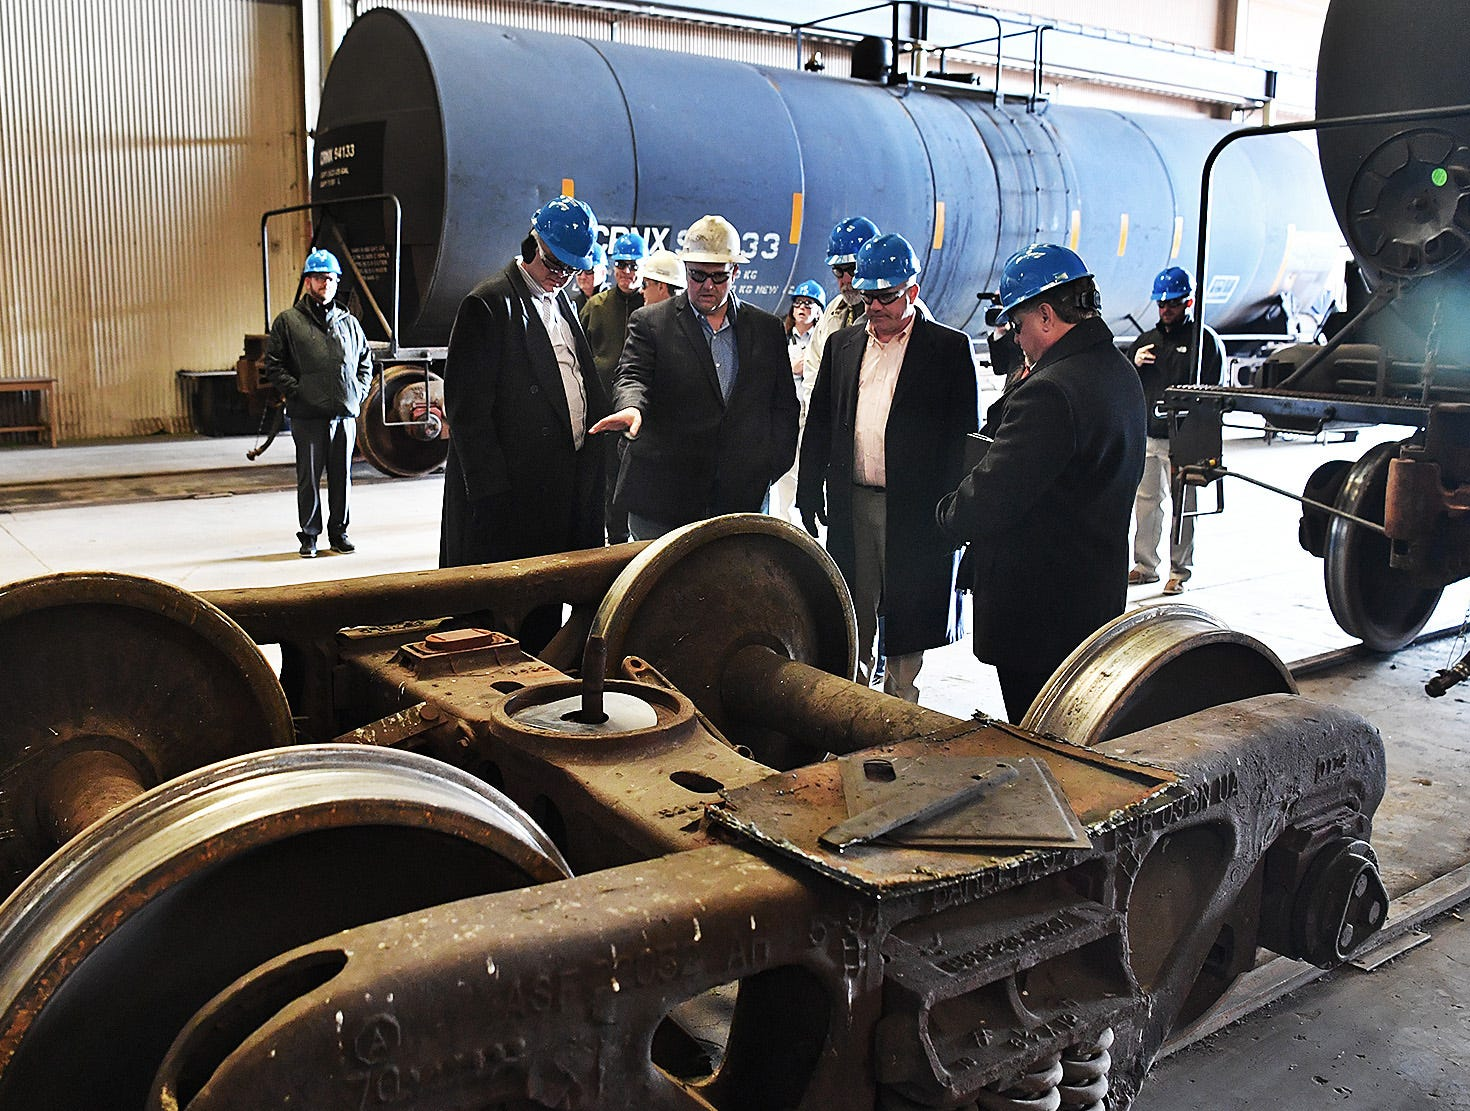 Eagle Railcar Services plant manager James Bullard conducts a tour of the facility for community leaders Friday. The company performs a wide variety of repair, repainting and maintenance services on almost every type of railcar.